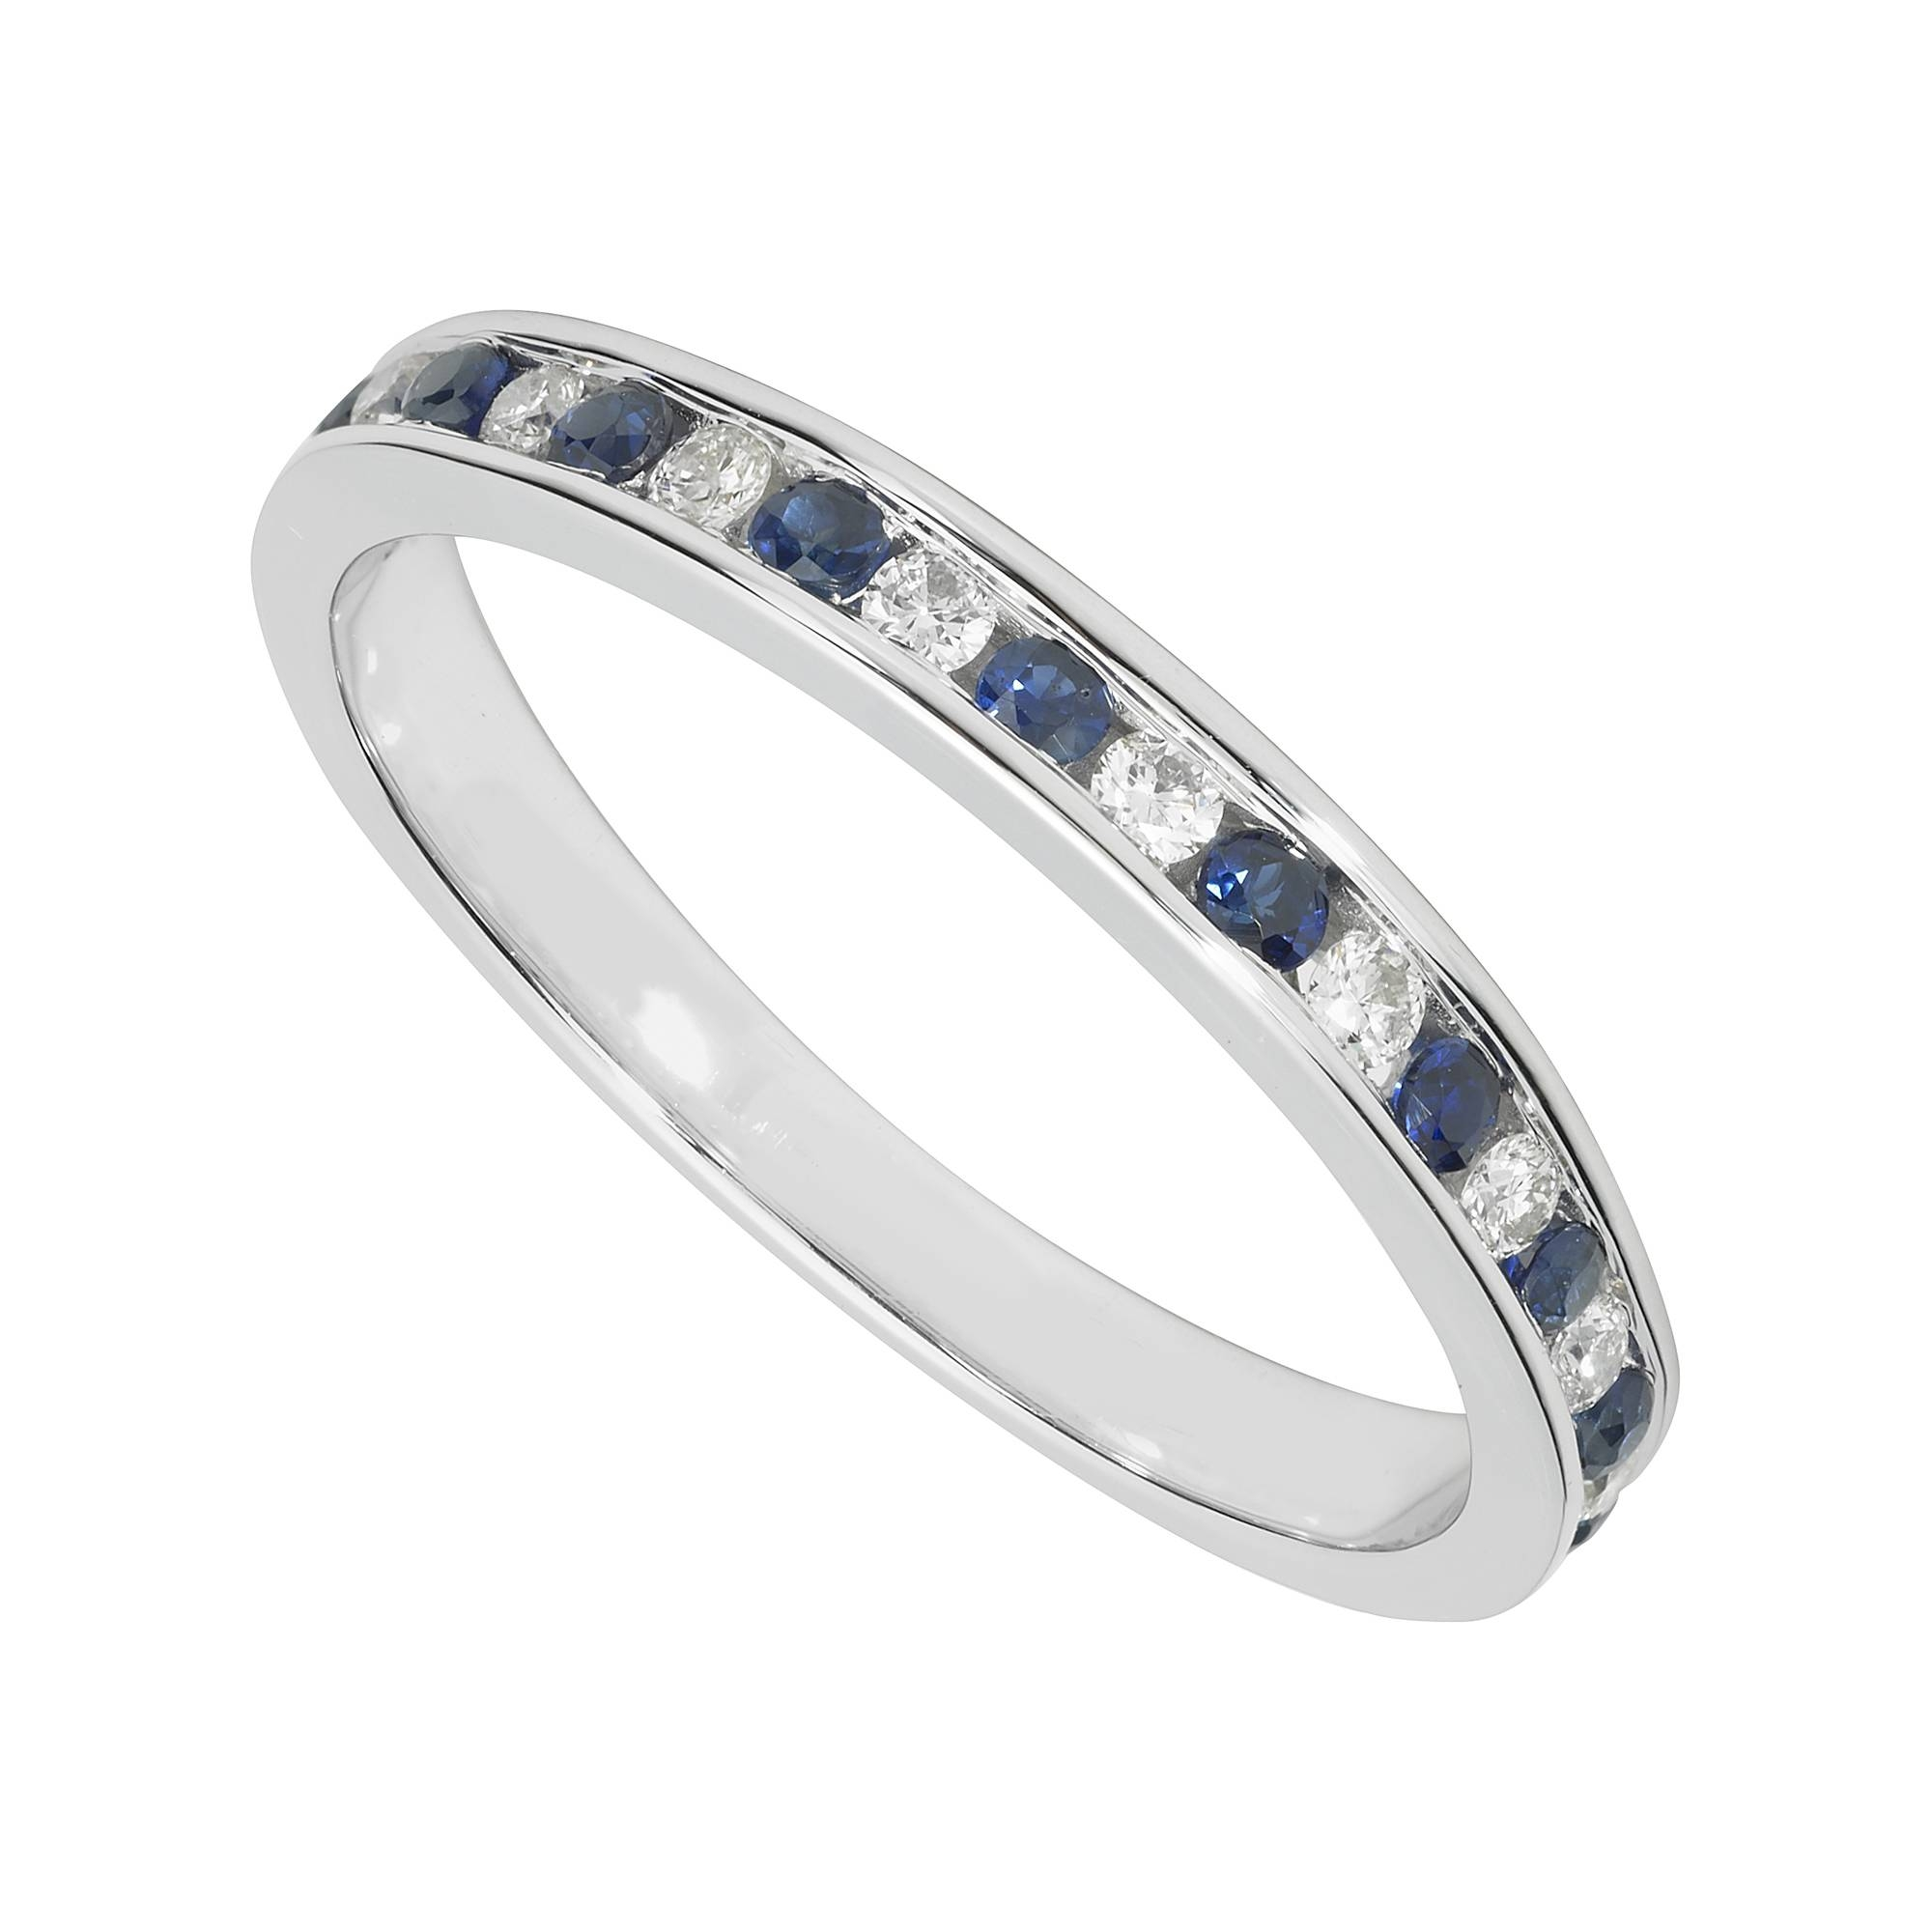 Ladies' 9Ct White Gold Diamond And Sapphire Wedding Ring Within Most Recent Blue Sapphire Anniversary Rings (View 9 of 25)